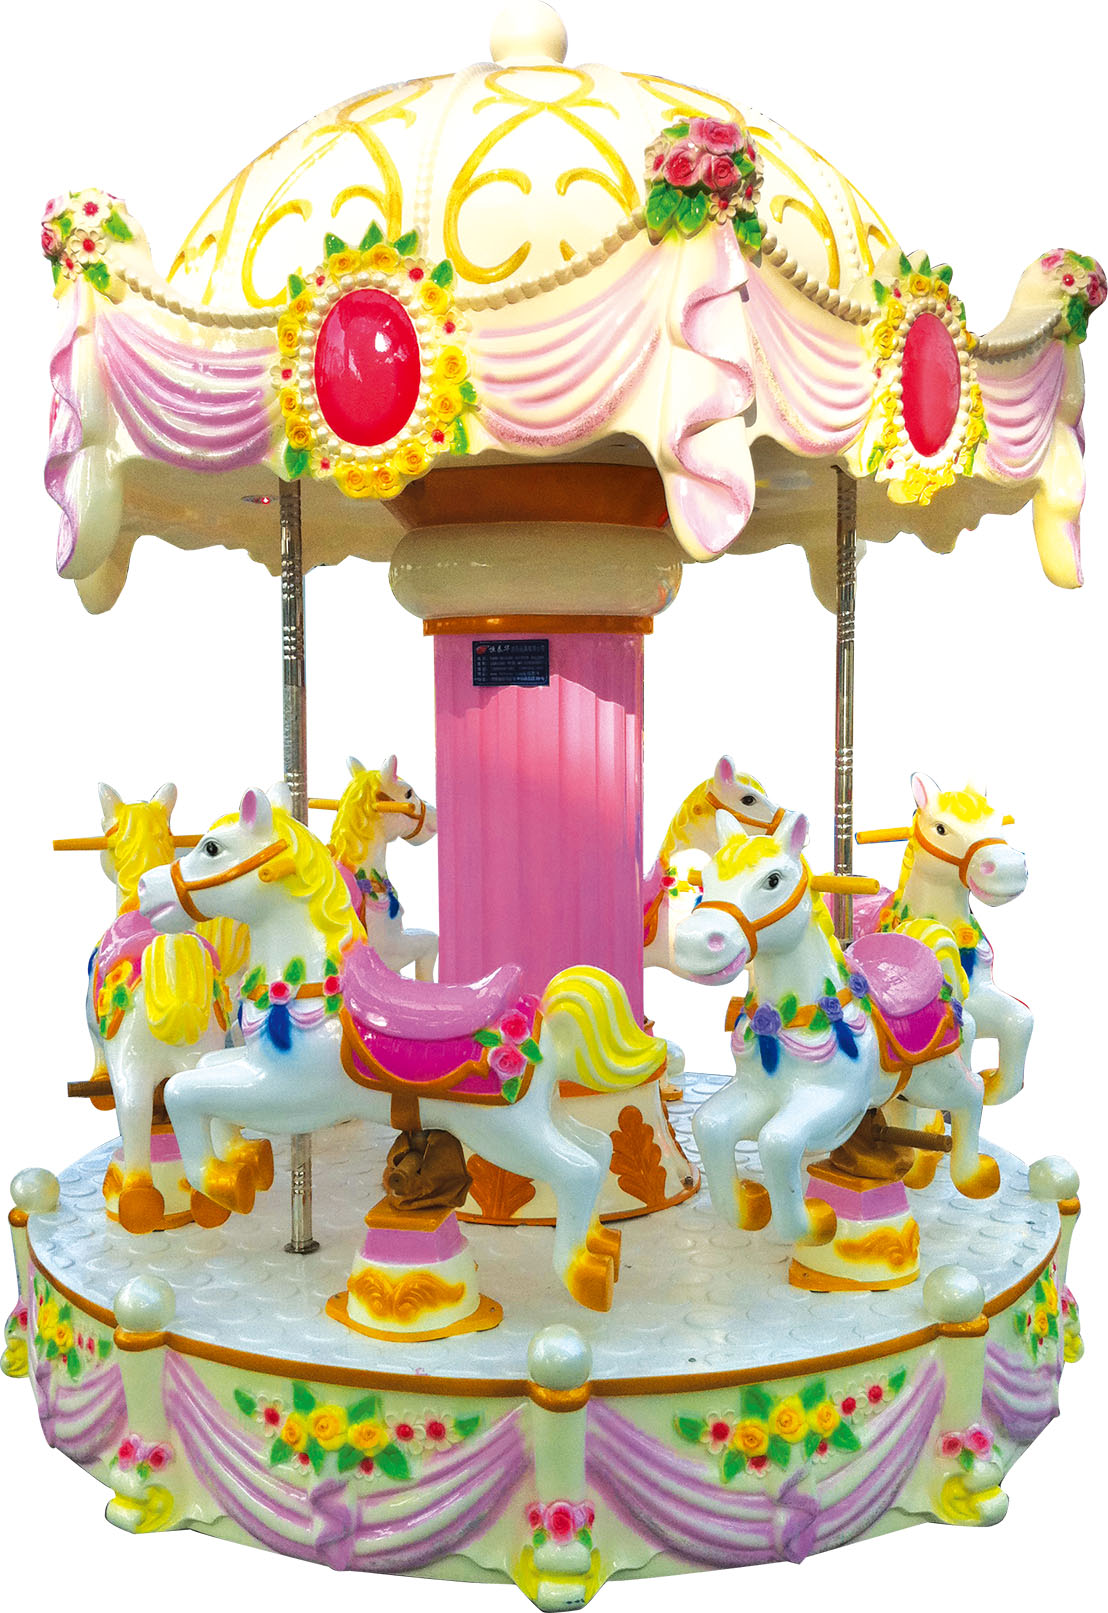 palace carousel amusement equipment merry-go-round for 6 seater